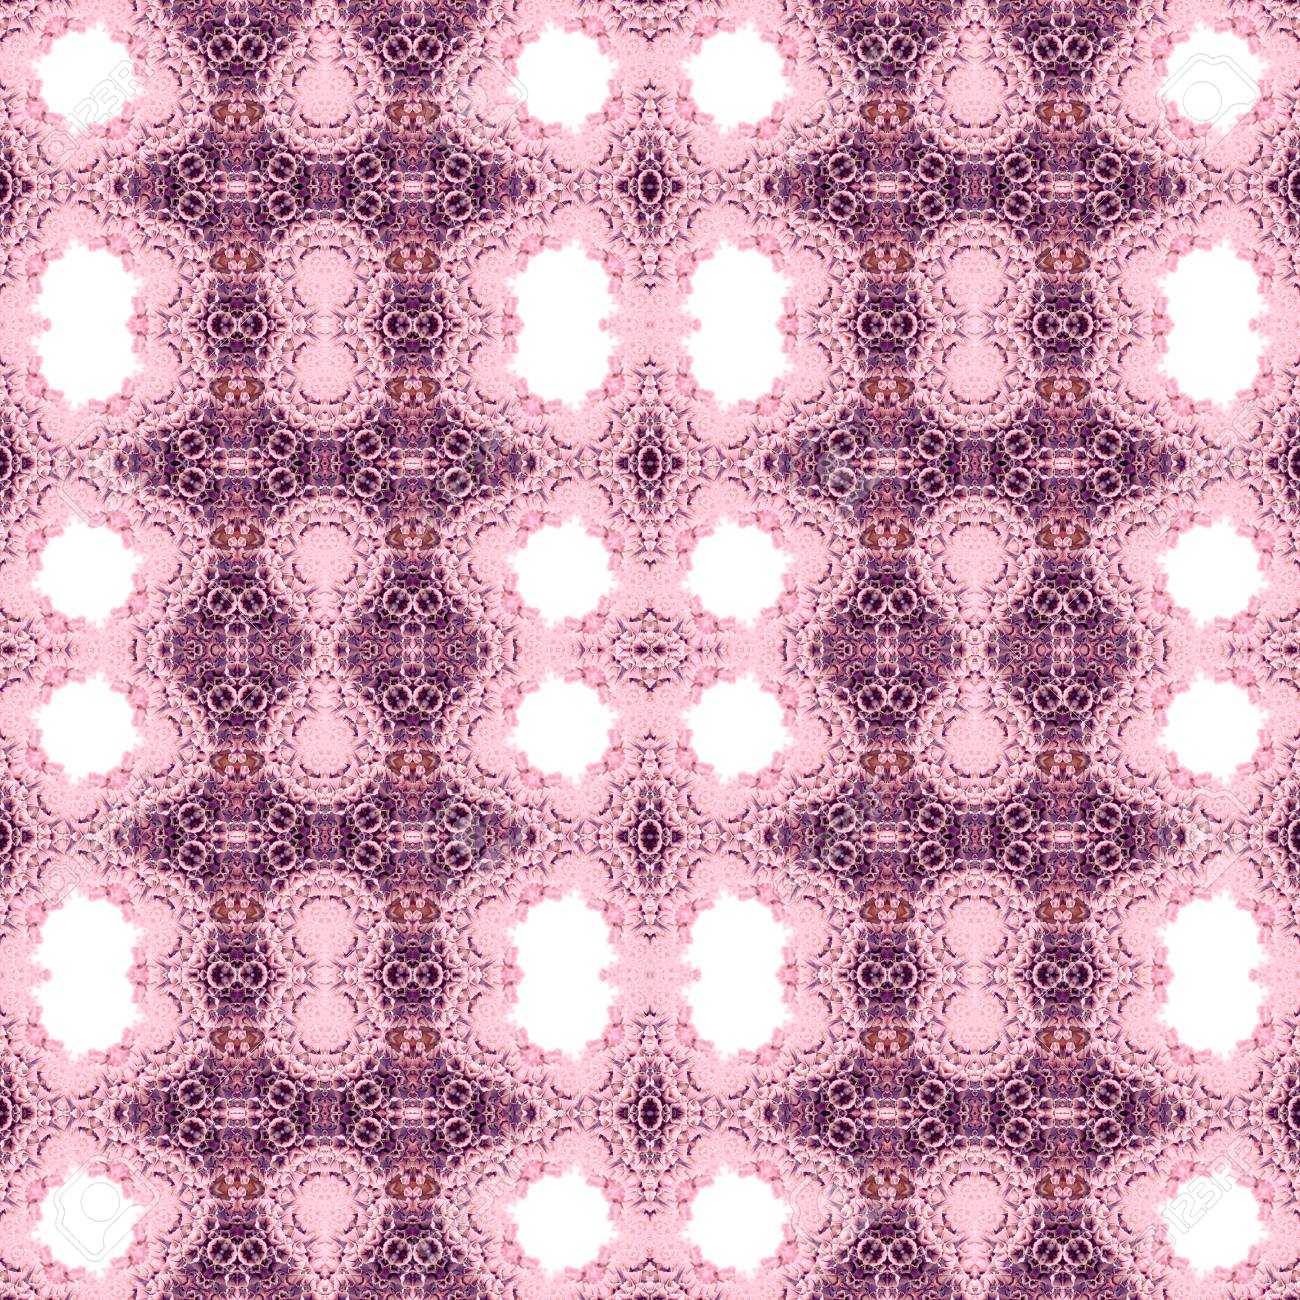 Abstract flowers seamless pattern background. Kaleidoscope from flowers. Hydraulic tile design. - 104074907